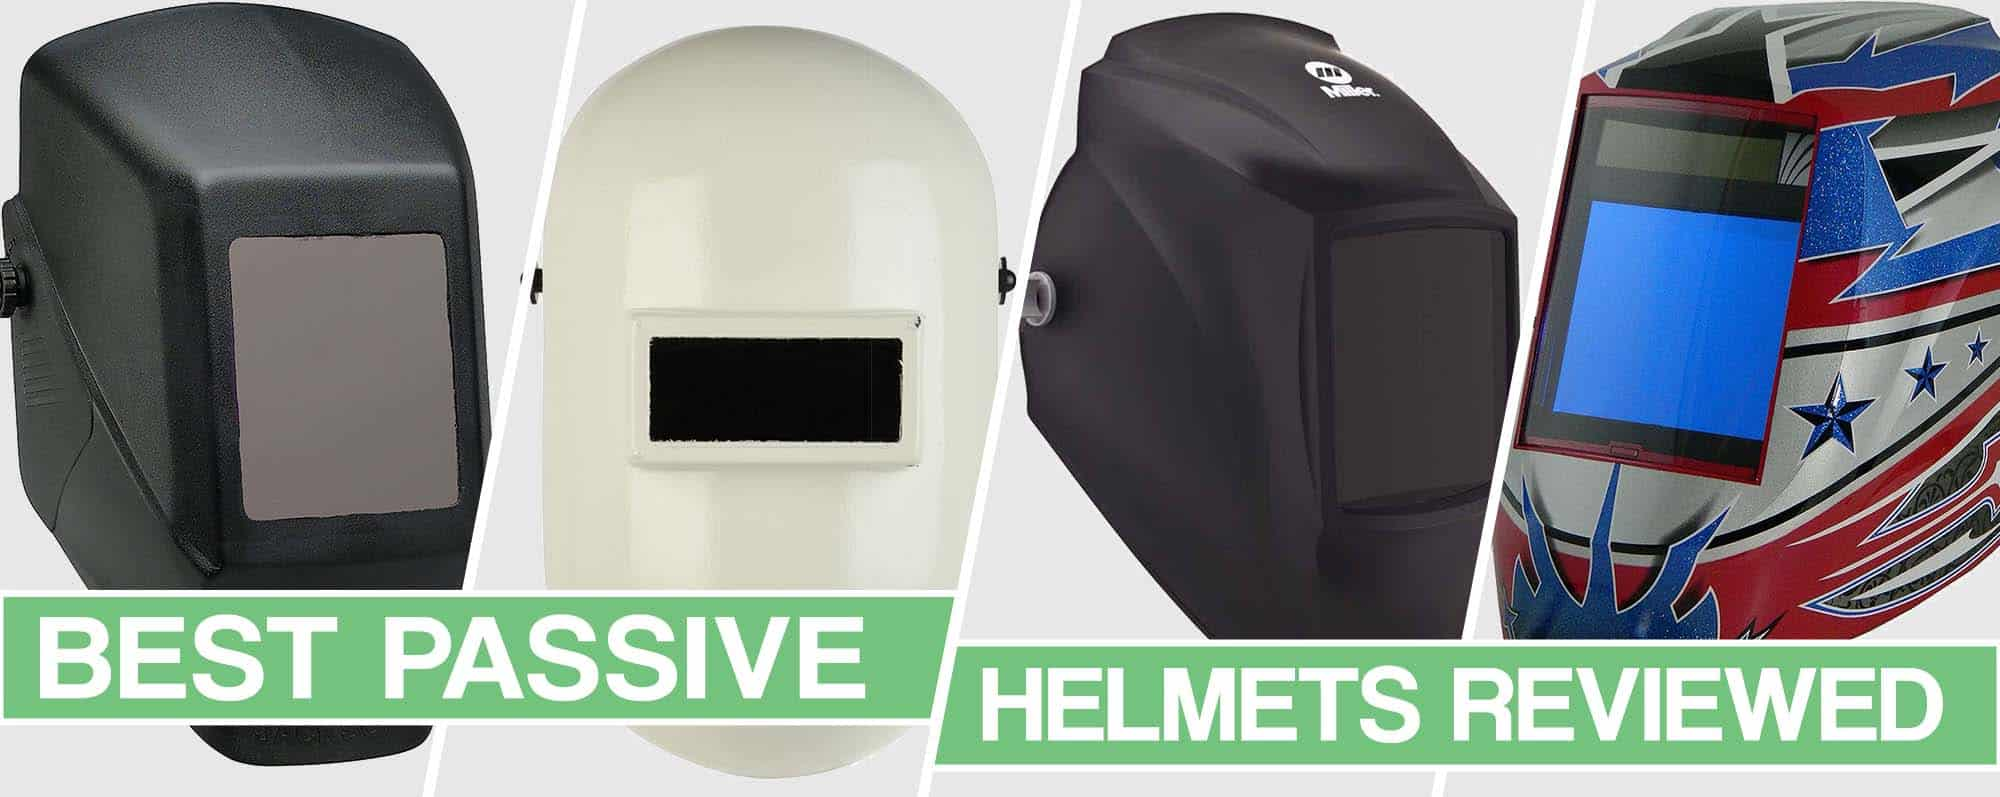 image of the best passive welding helmets